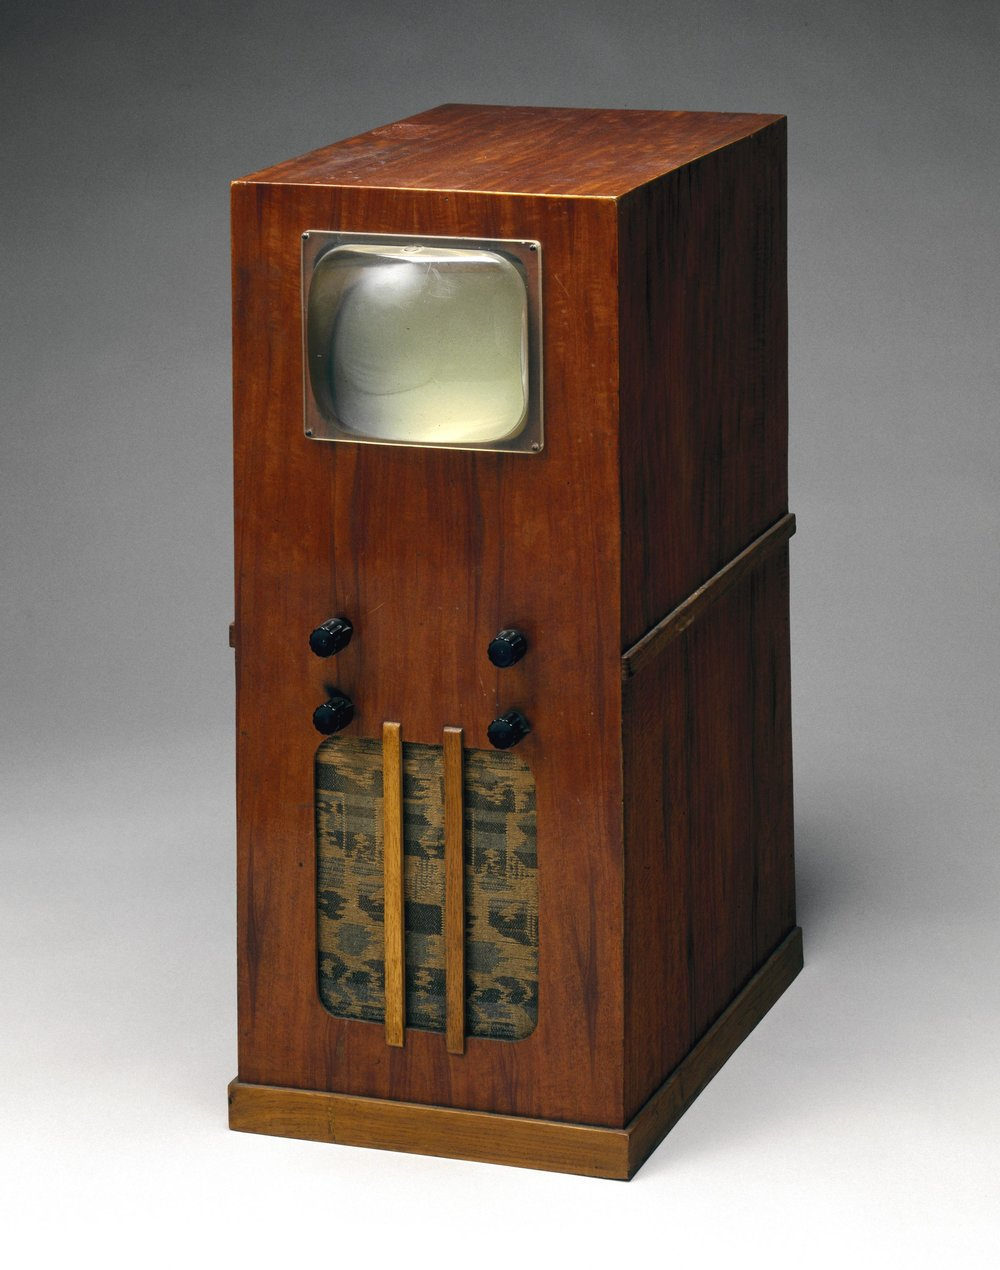 Home-made television receiver built from a Premier Radio kit (1945-1955). More information